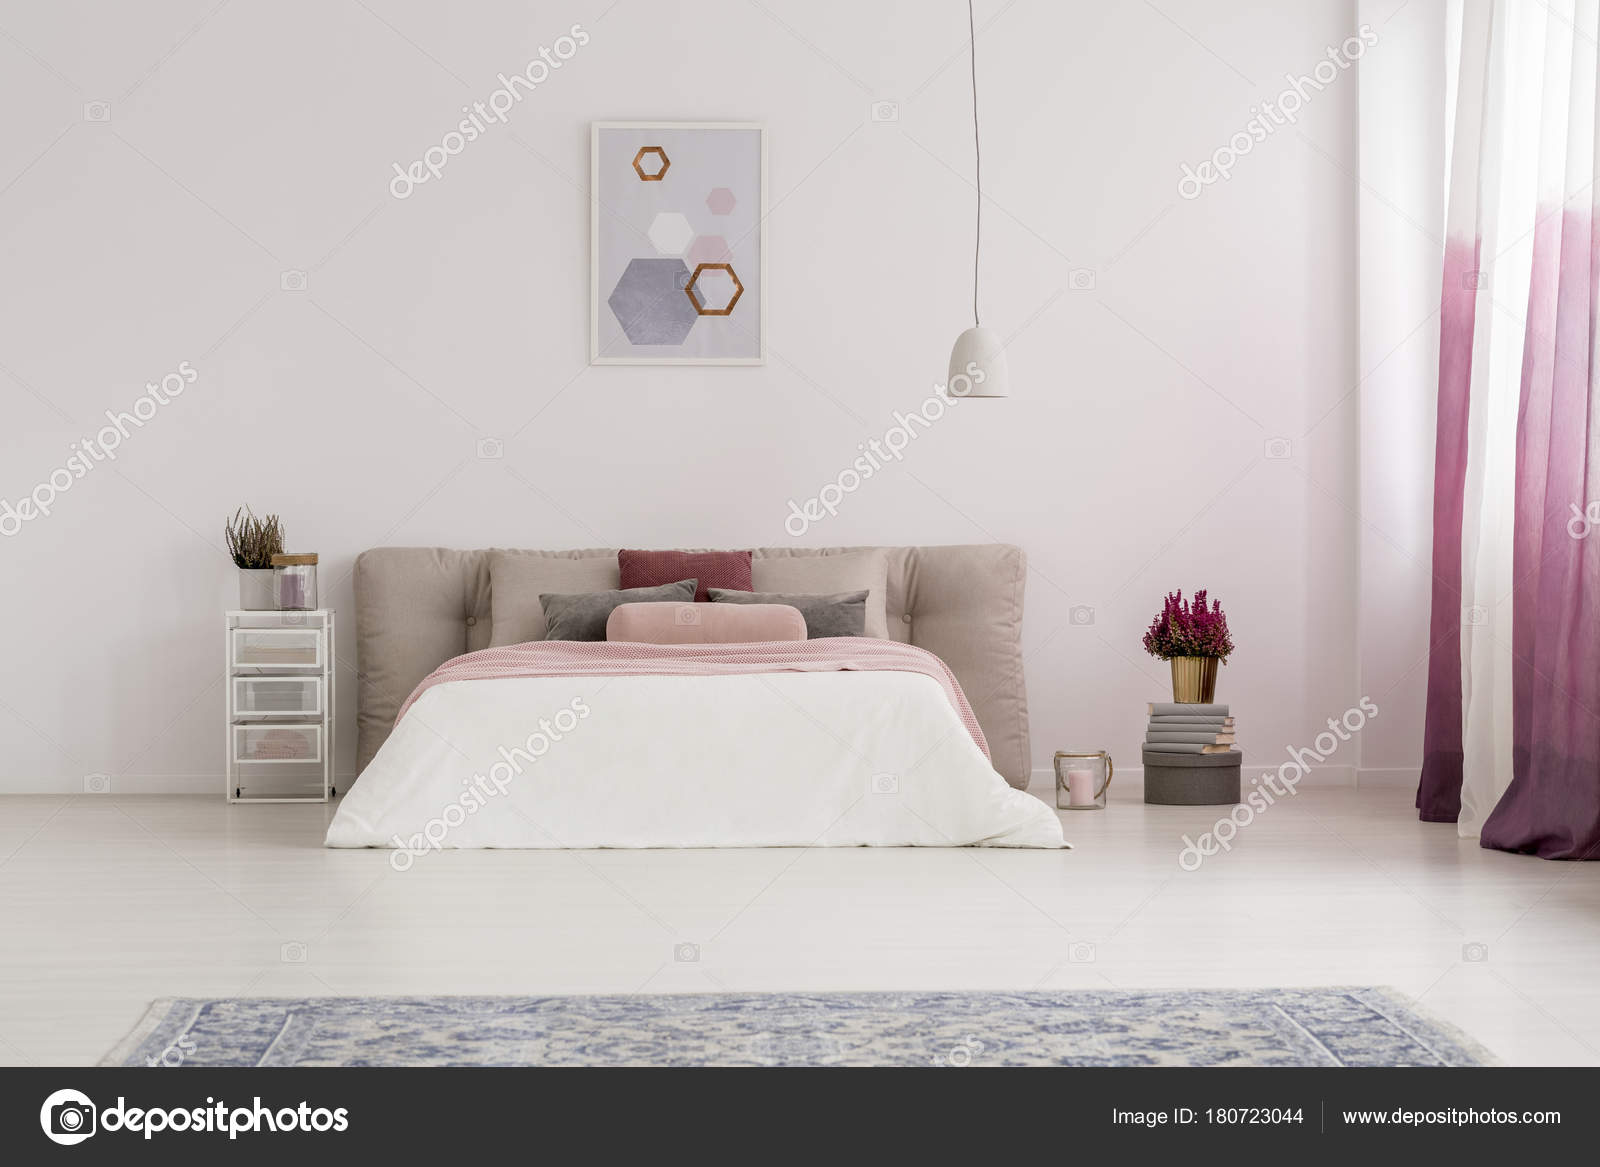 Lamp Boven Bed Witte Lamp Boven Bed Stockfoto Photographee Eu 180723044